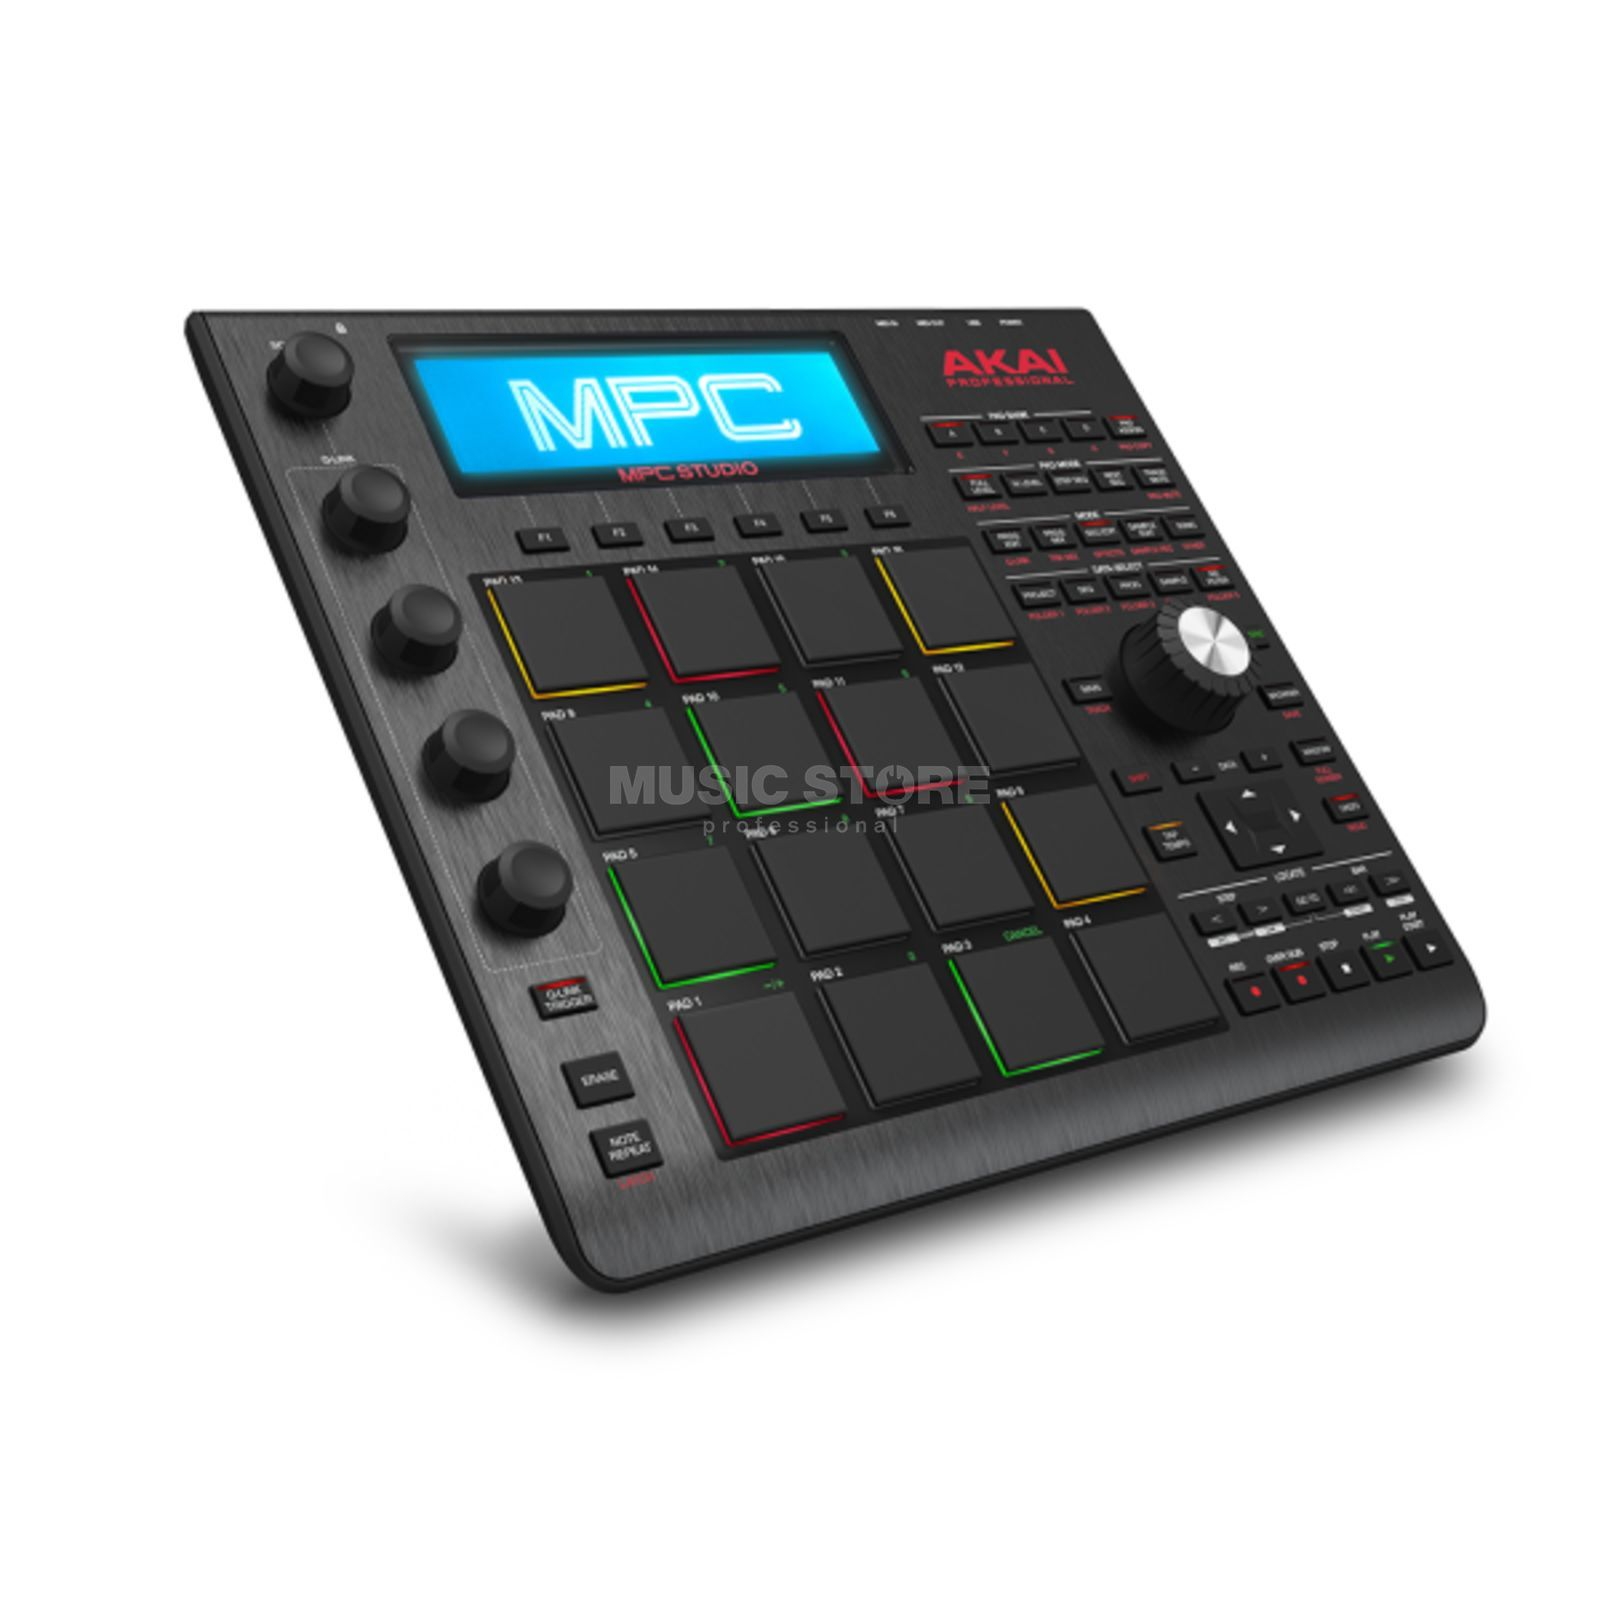 Akai MPC Studio black Music Production Controller Product Image